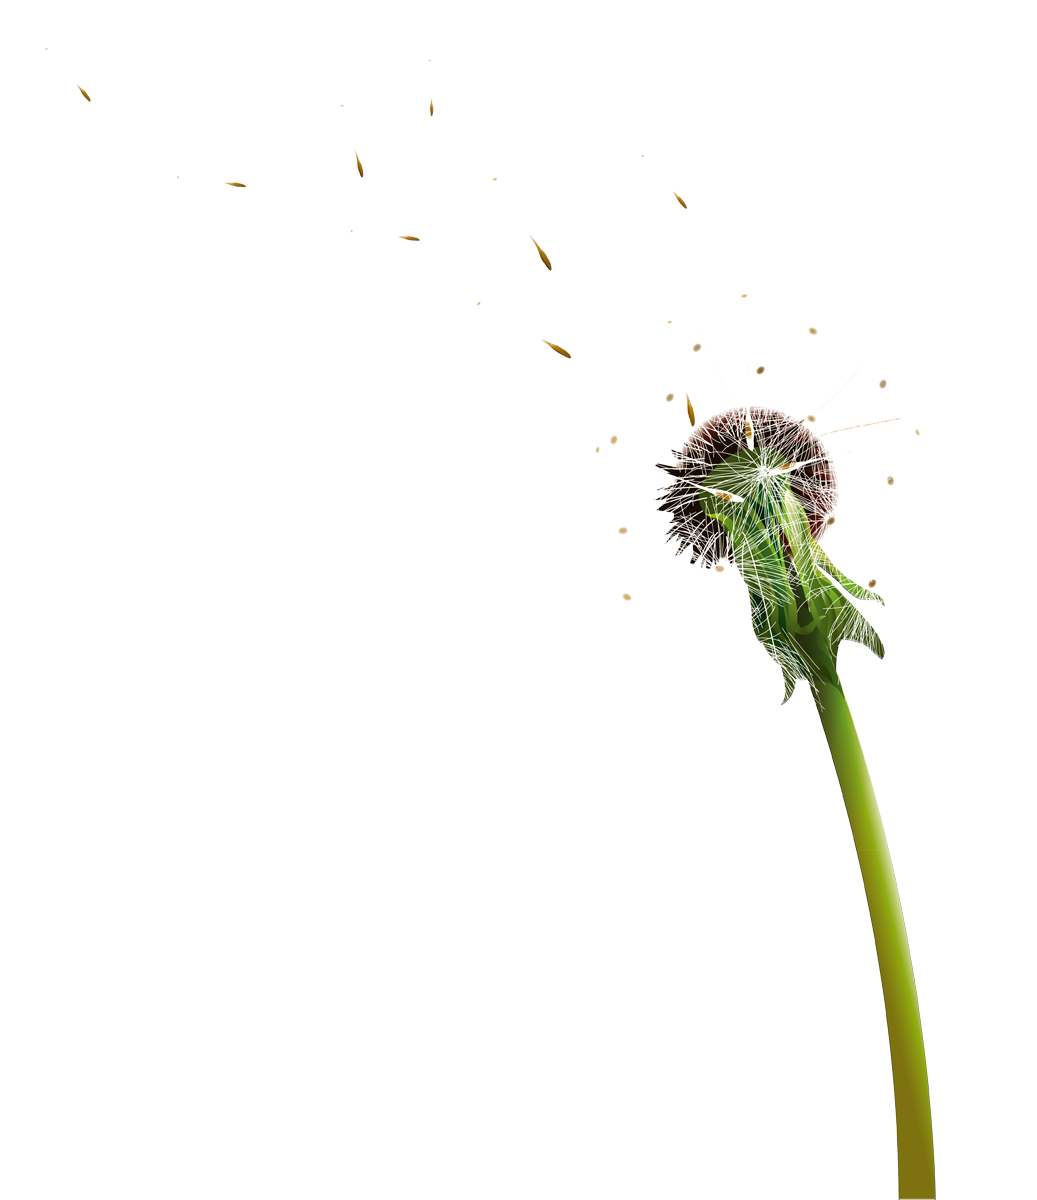 Banana graphics illustrations free. Dandelion clipart breeze